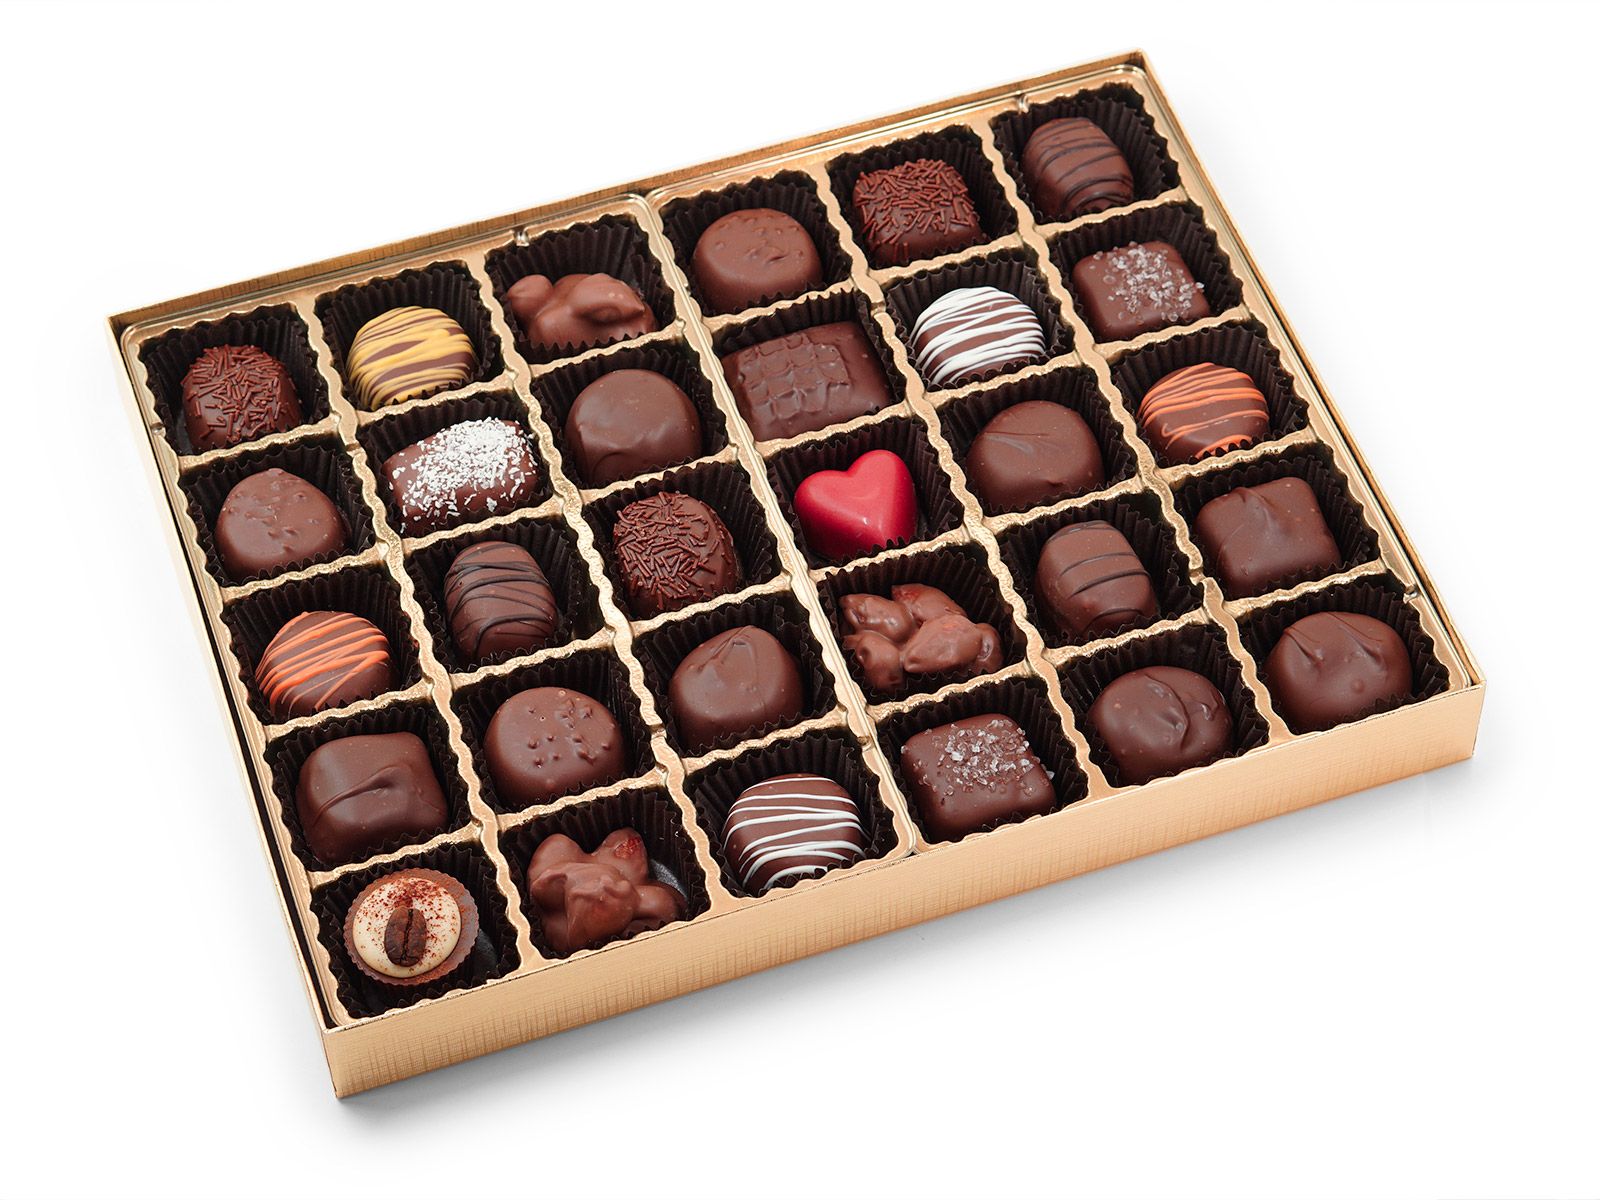 30 Piece Chocolate Assortment box